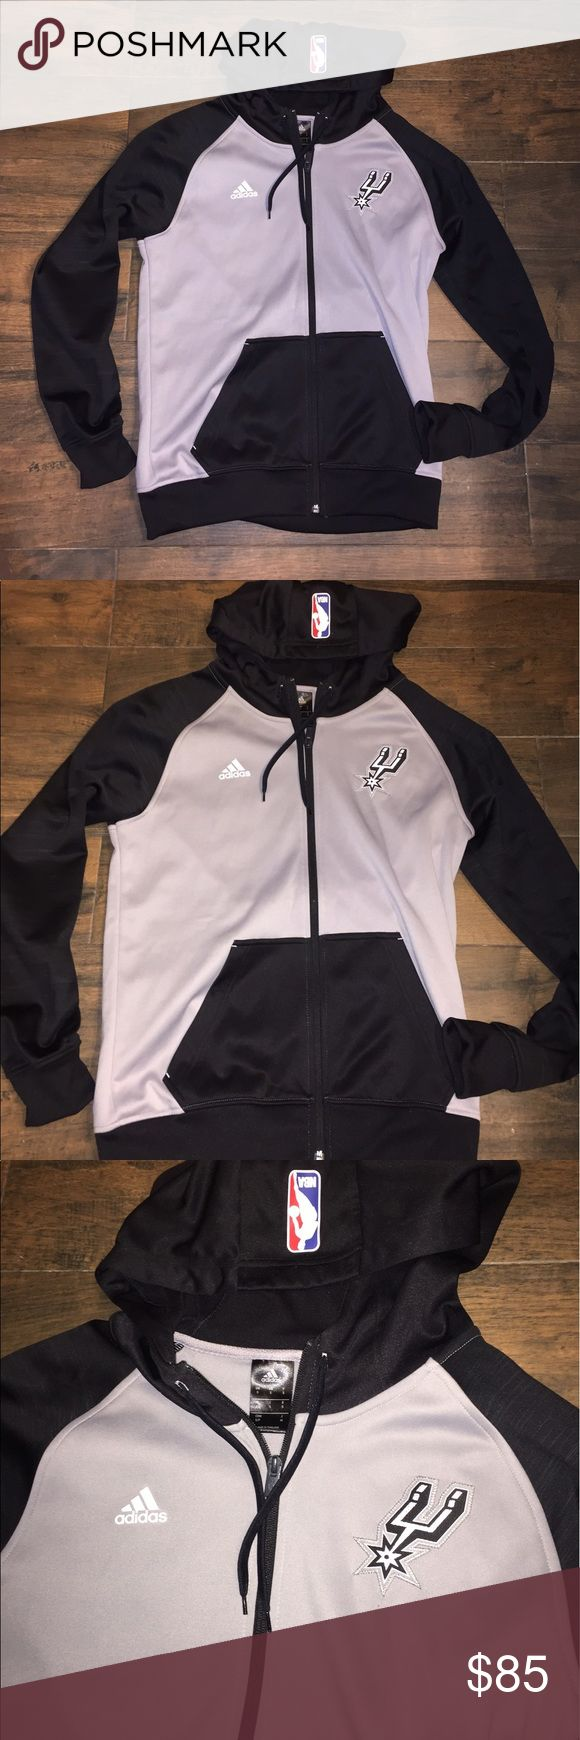 San Antonio Spurs jacket Hoodie NBA basketball S New without tags.  Rare.  Official on court jacket by adidas adidas Jackets & Coats Performance Jackets